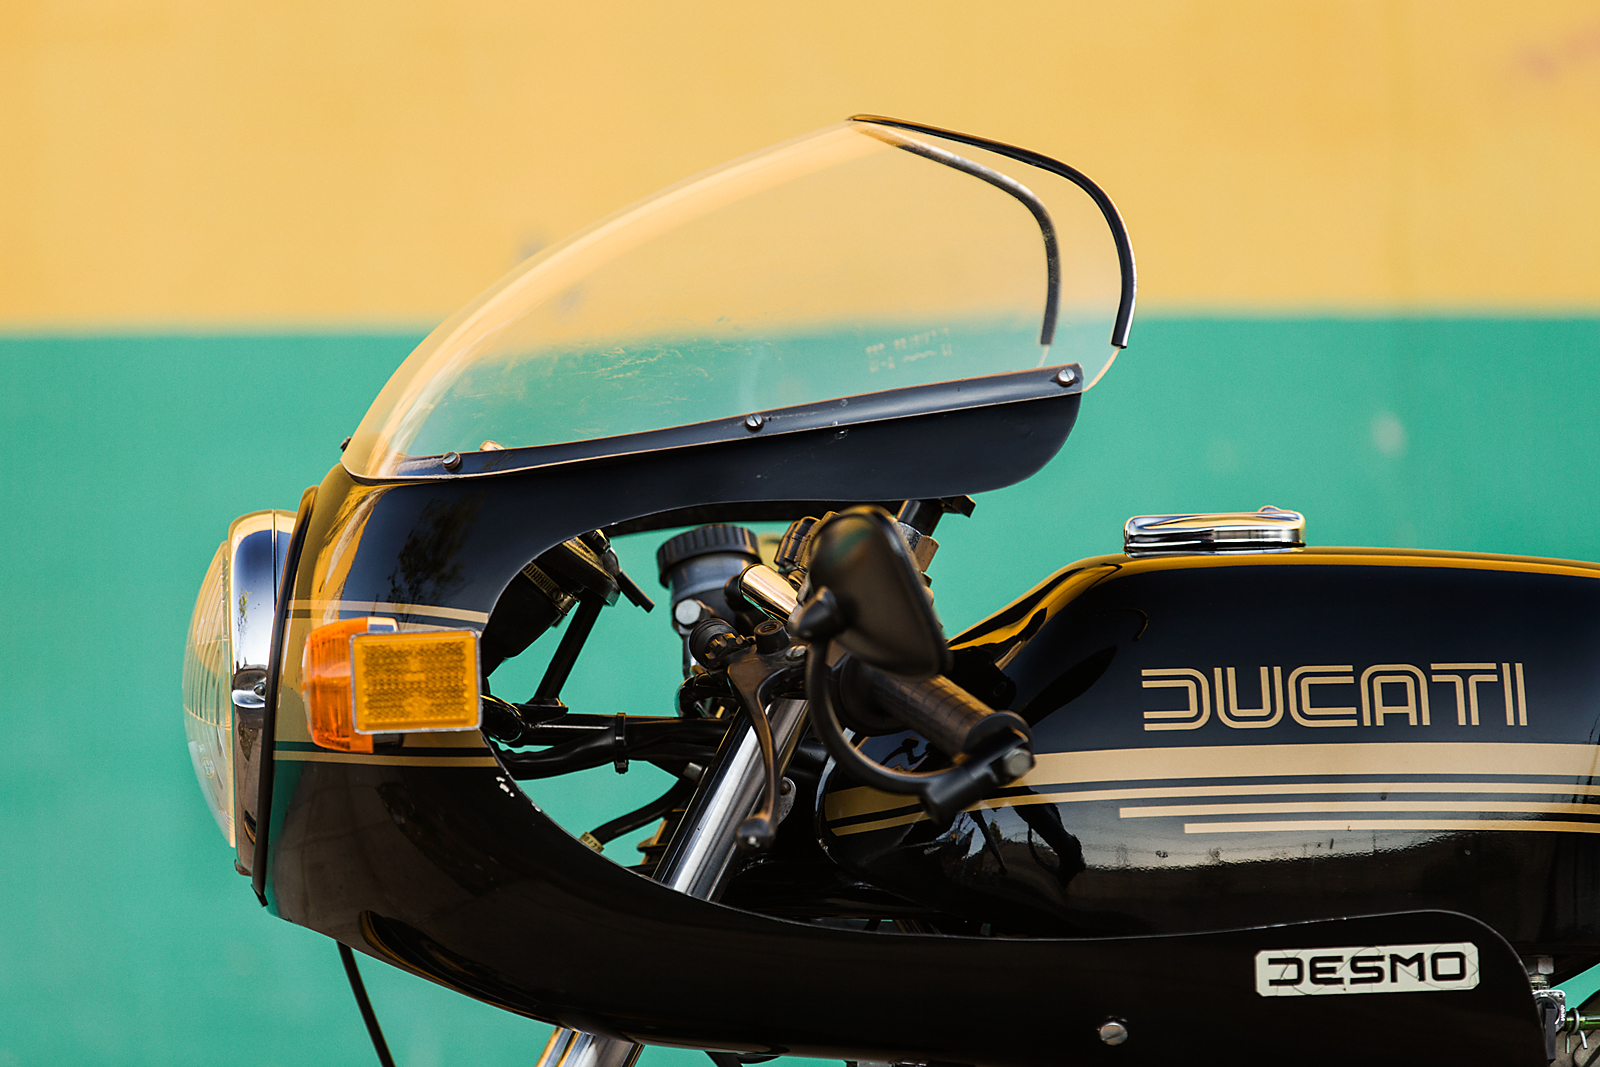 1979 DUCATI 900SS front